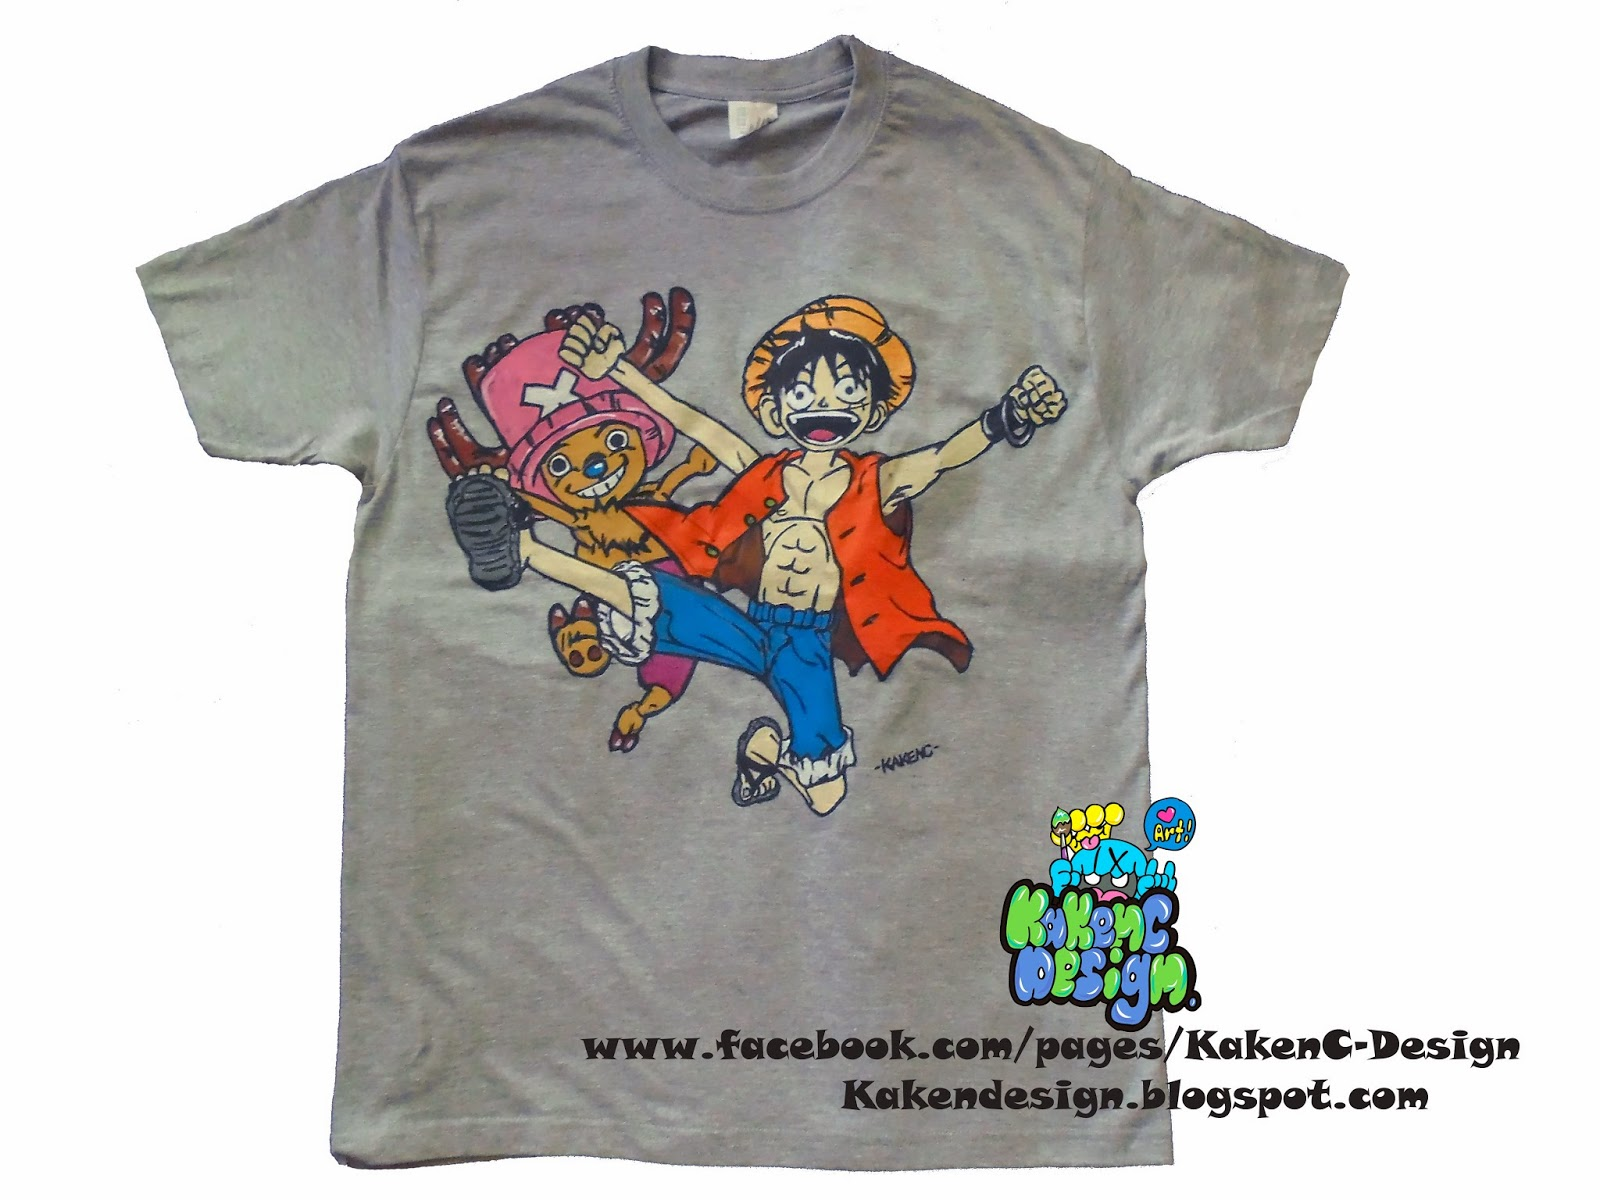 Anime One Piece Luffy And Tony Chopper Character Custom Hand Painted T Shirt Design Which Contain Of 1 2 Cartoon Can Be